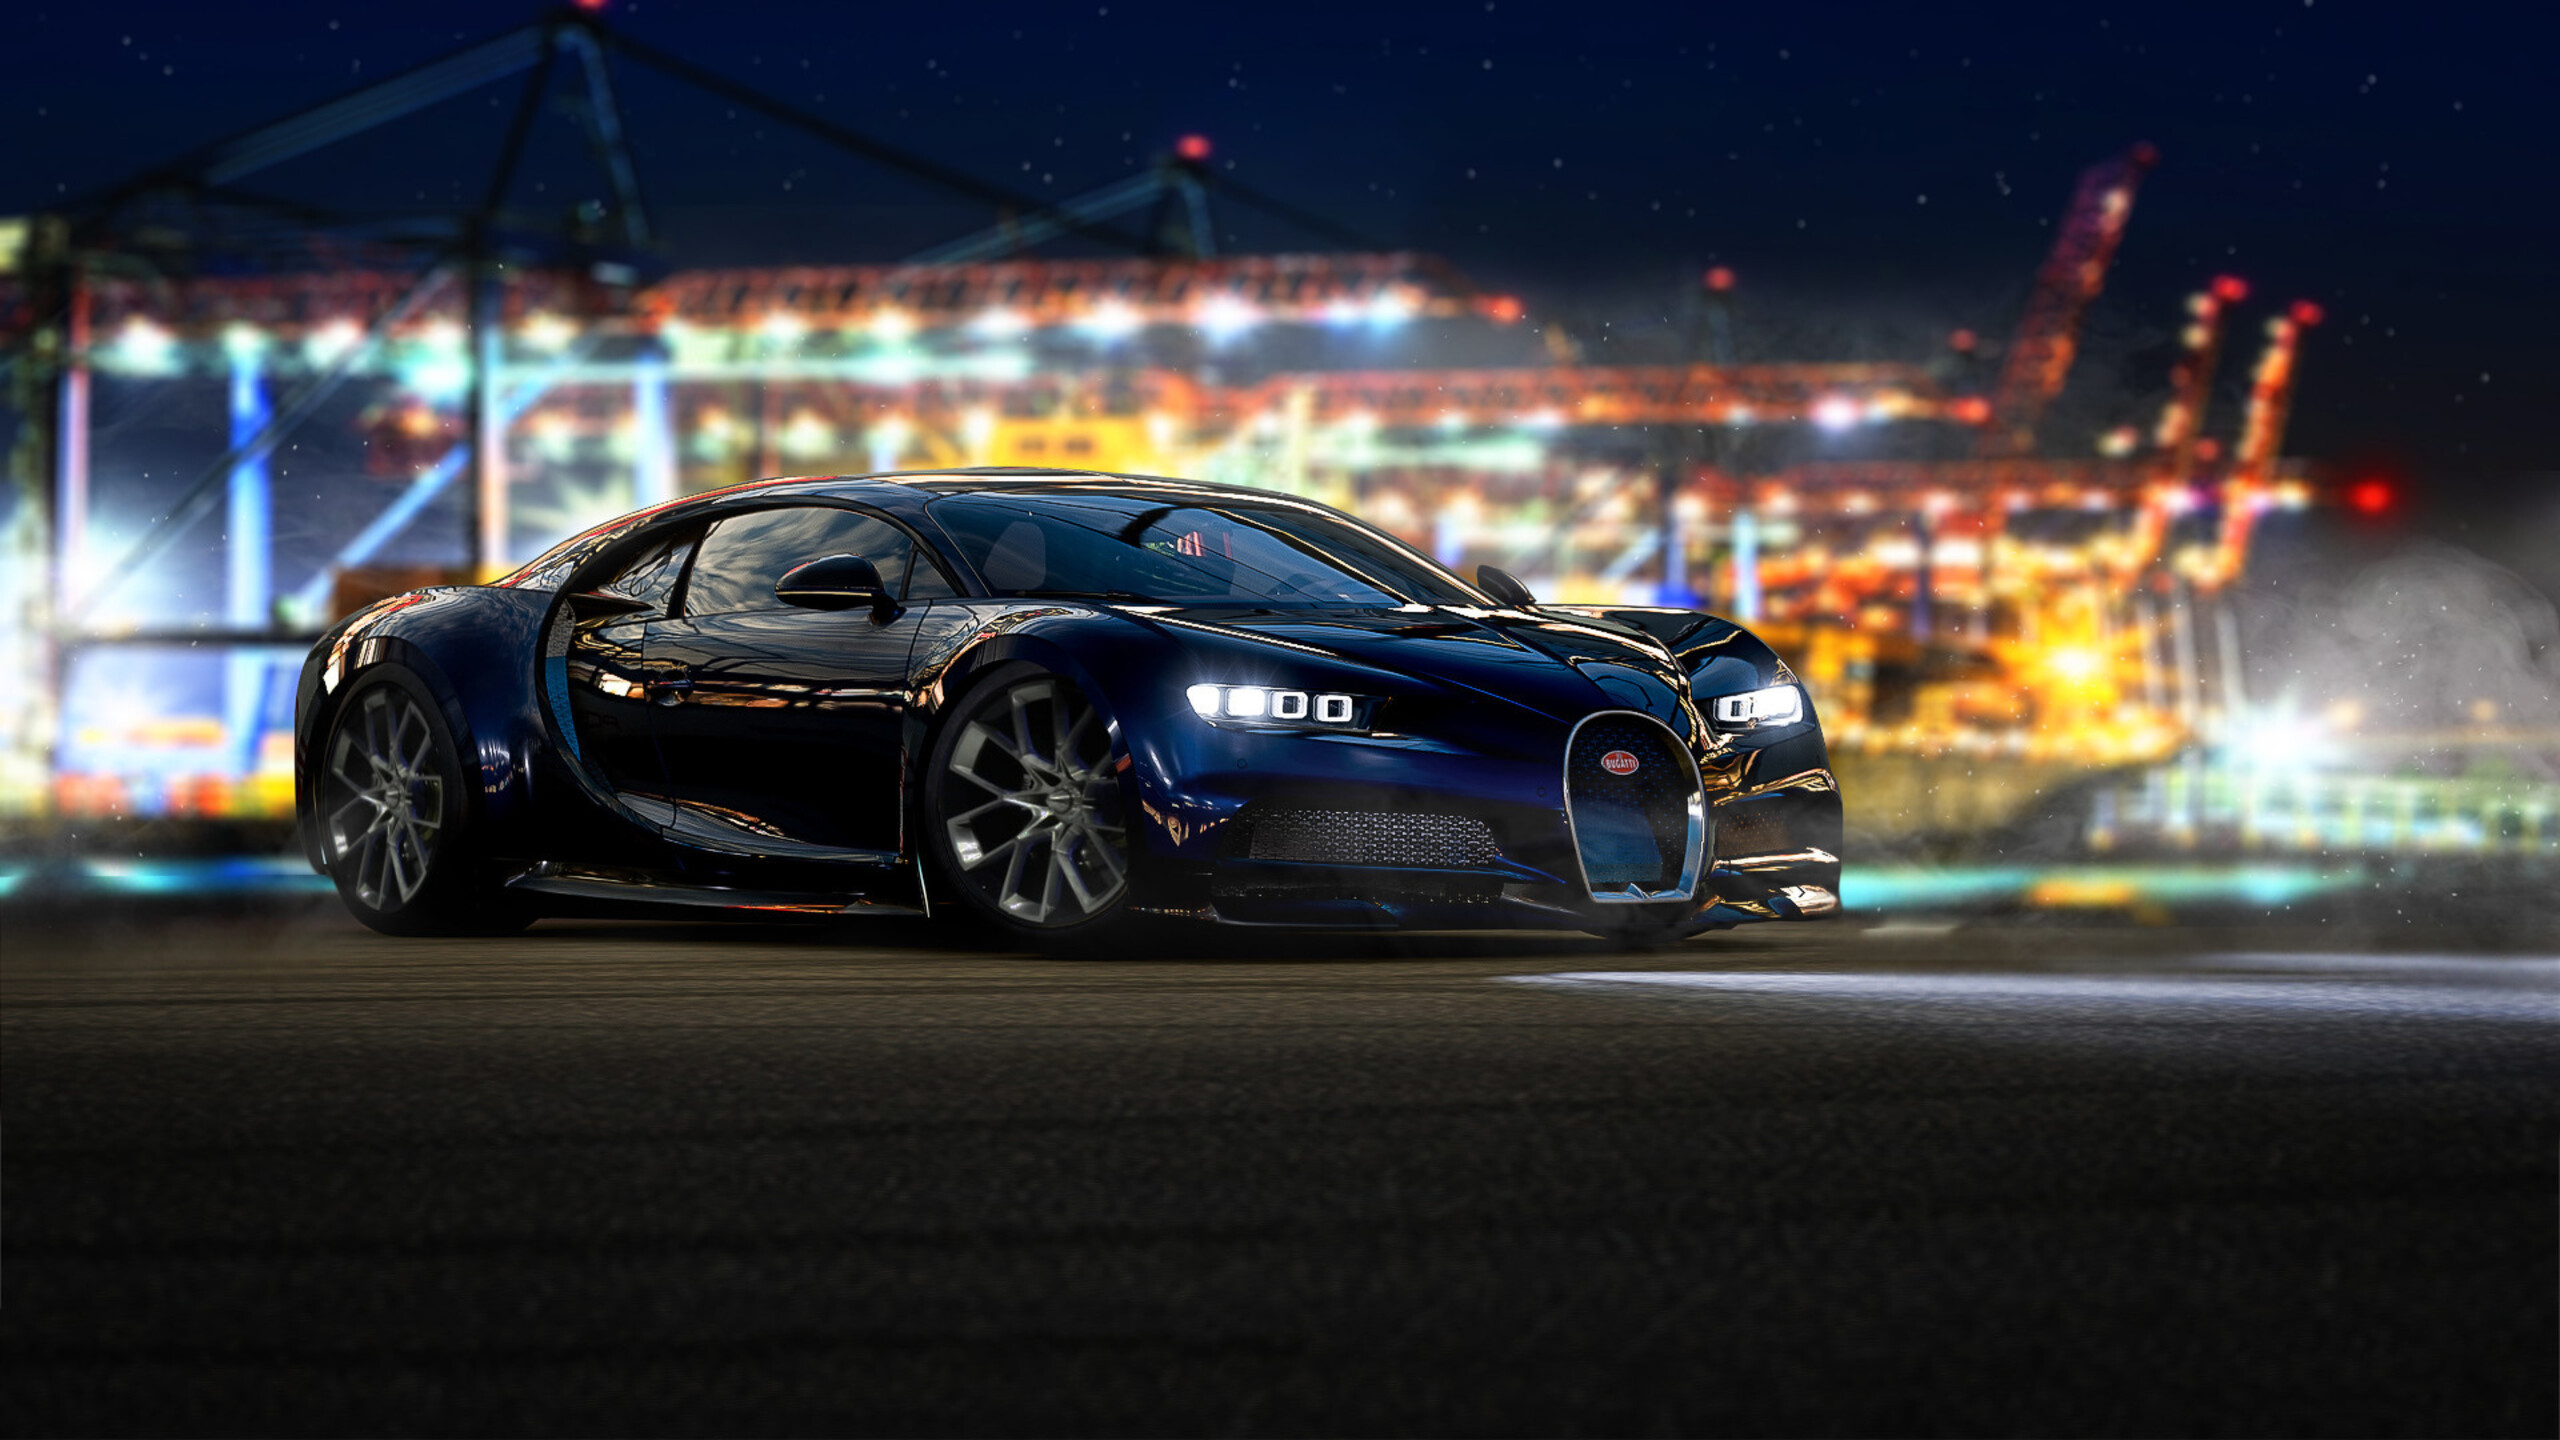 Forza Motorsport 7 Wallpapers Ultra Hd Gaming Backgrounds: 2560x1440 Forza Motorsport 7 Bugatti 1440P Resolution HD